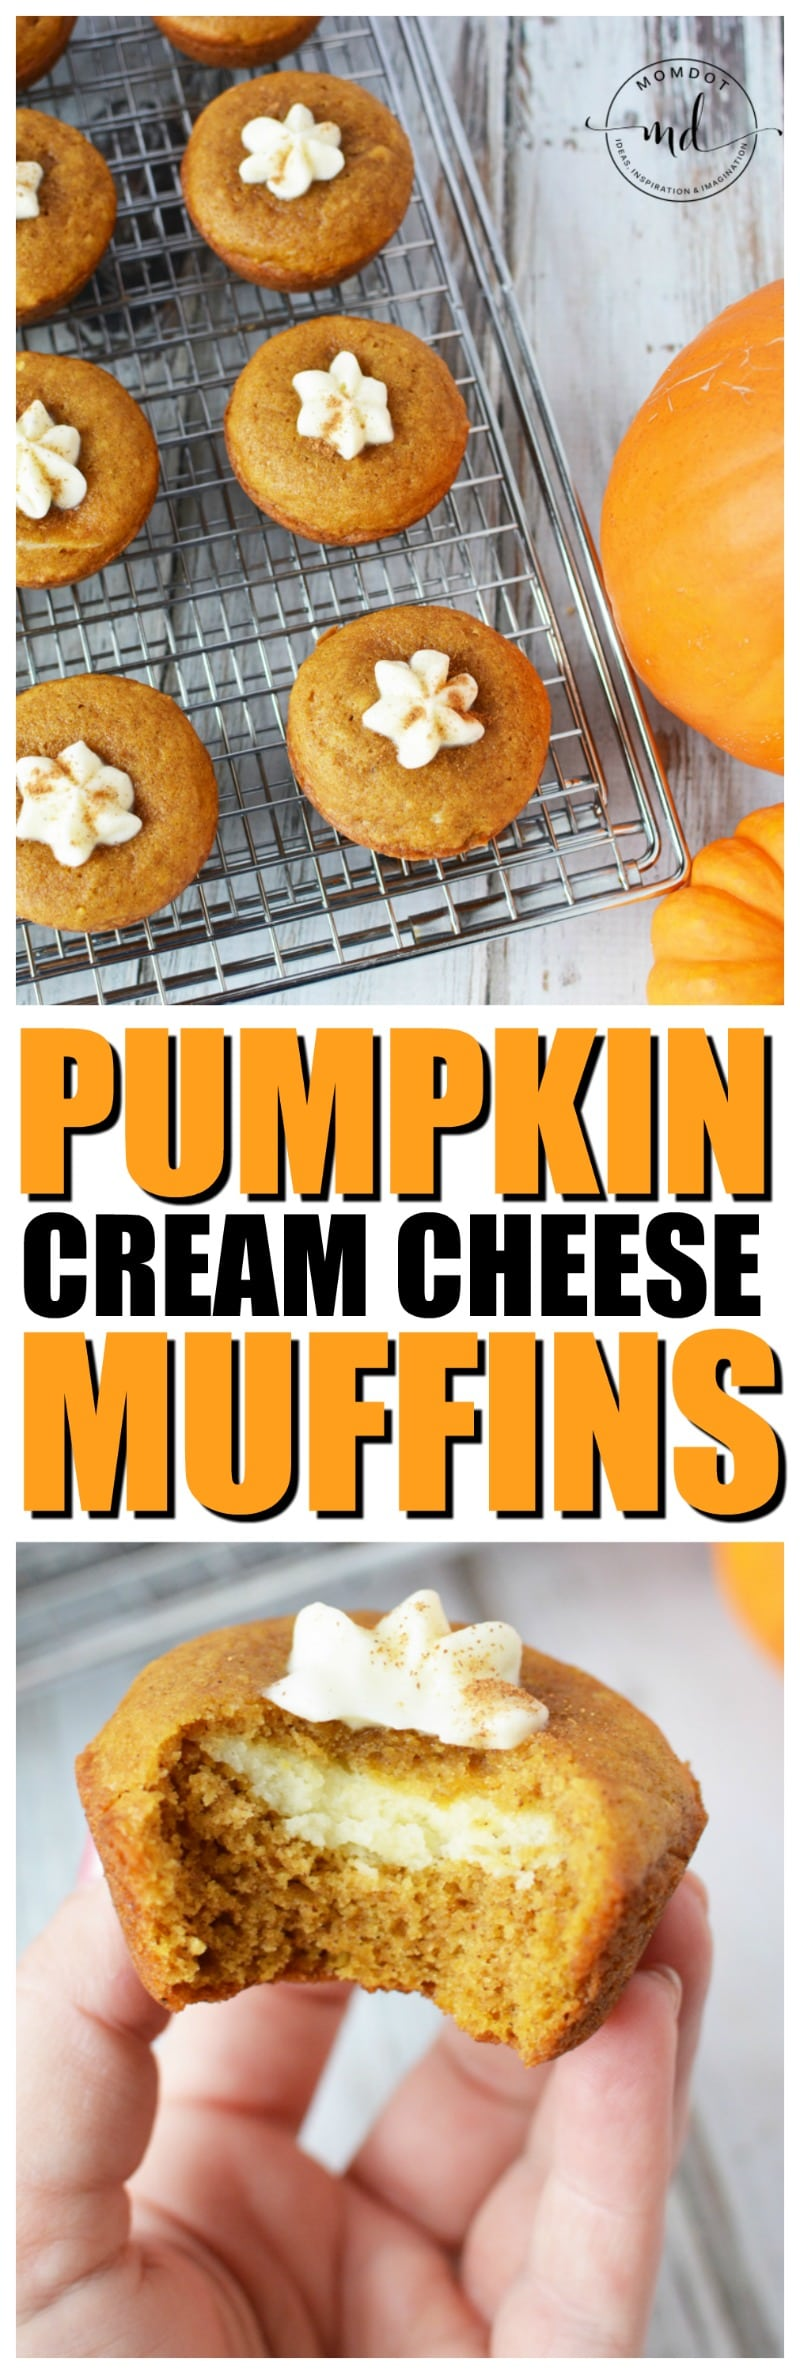 Pumpkin Cream Cheese Muffins | Delicious Holiday Dessert Recipe with Homemade Cream Cheese filling